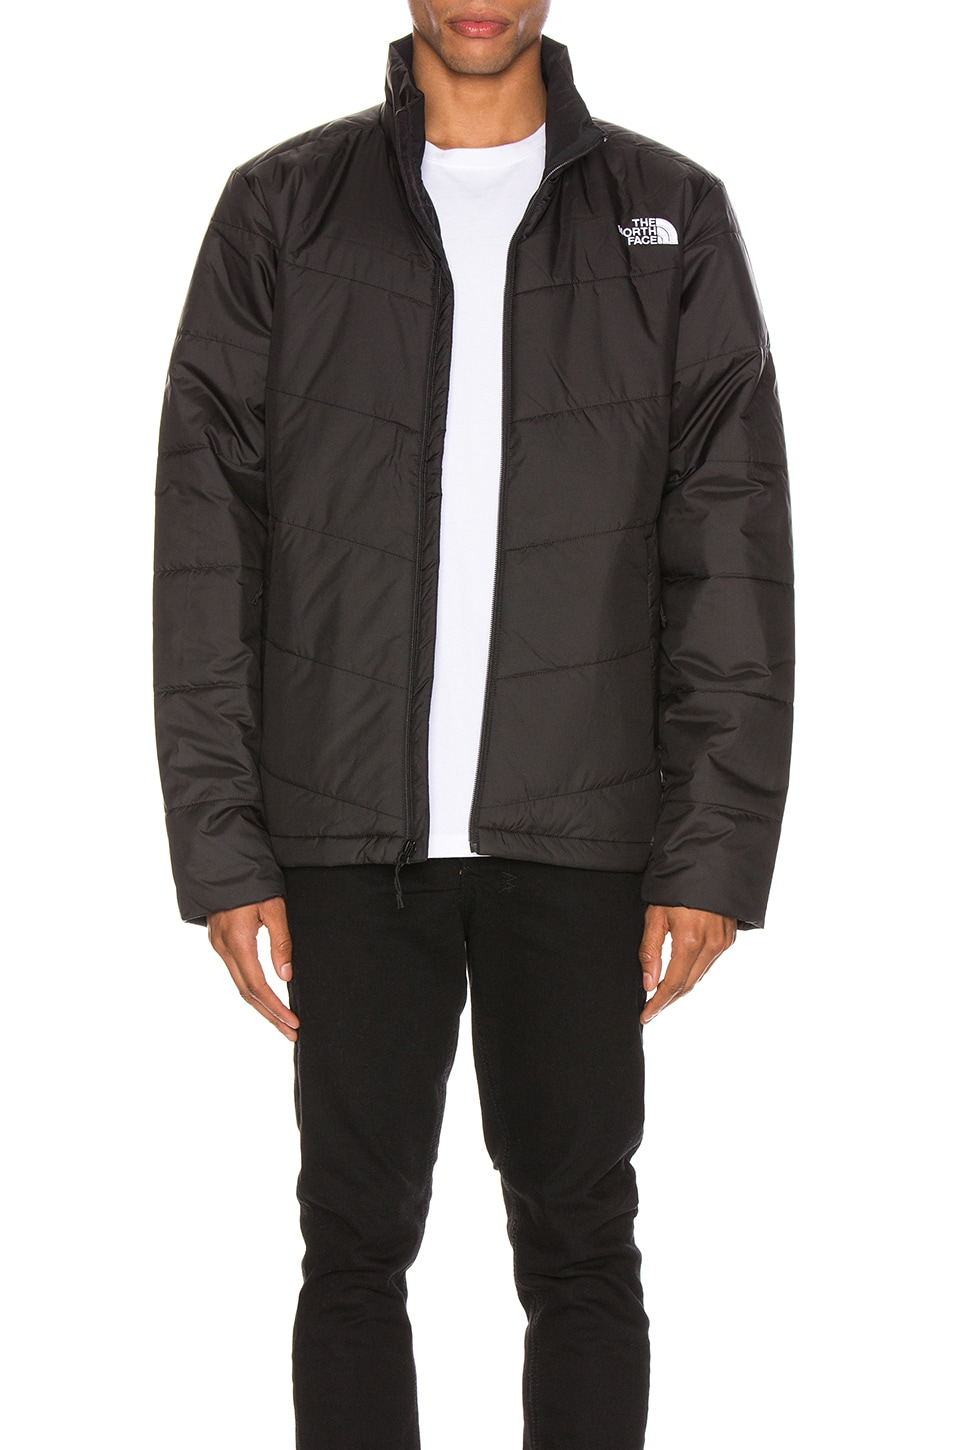 The North Face Junction Insulated Jacket in TNF Black